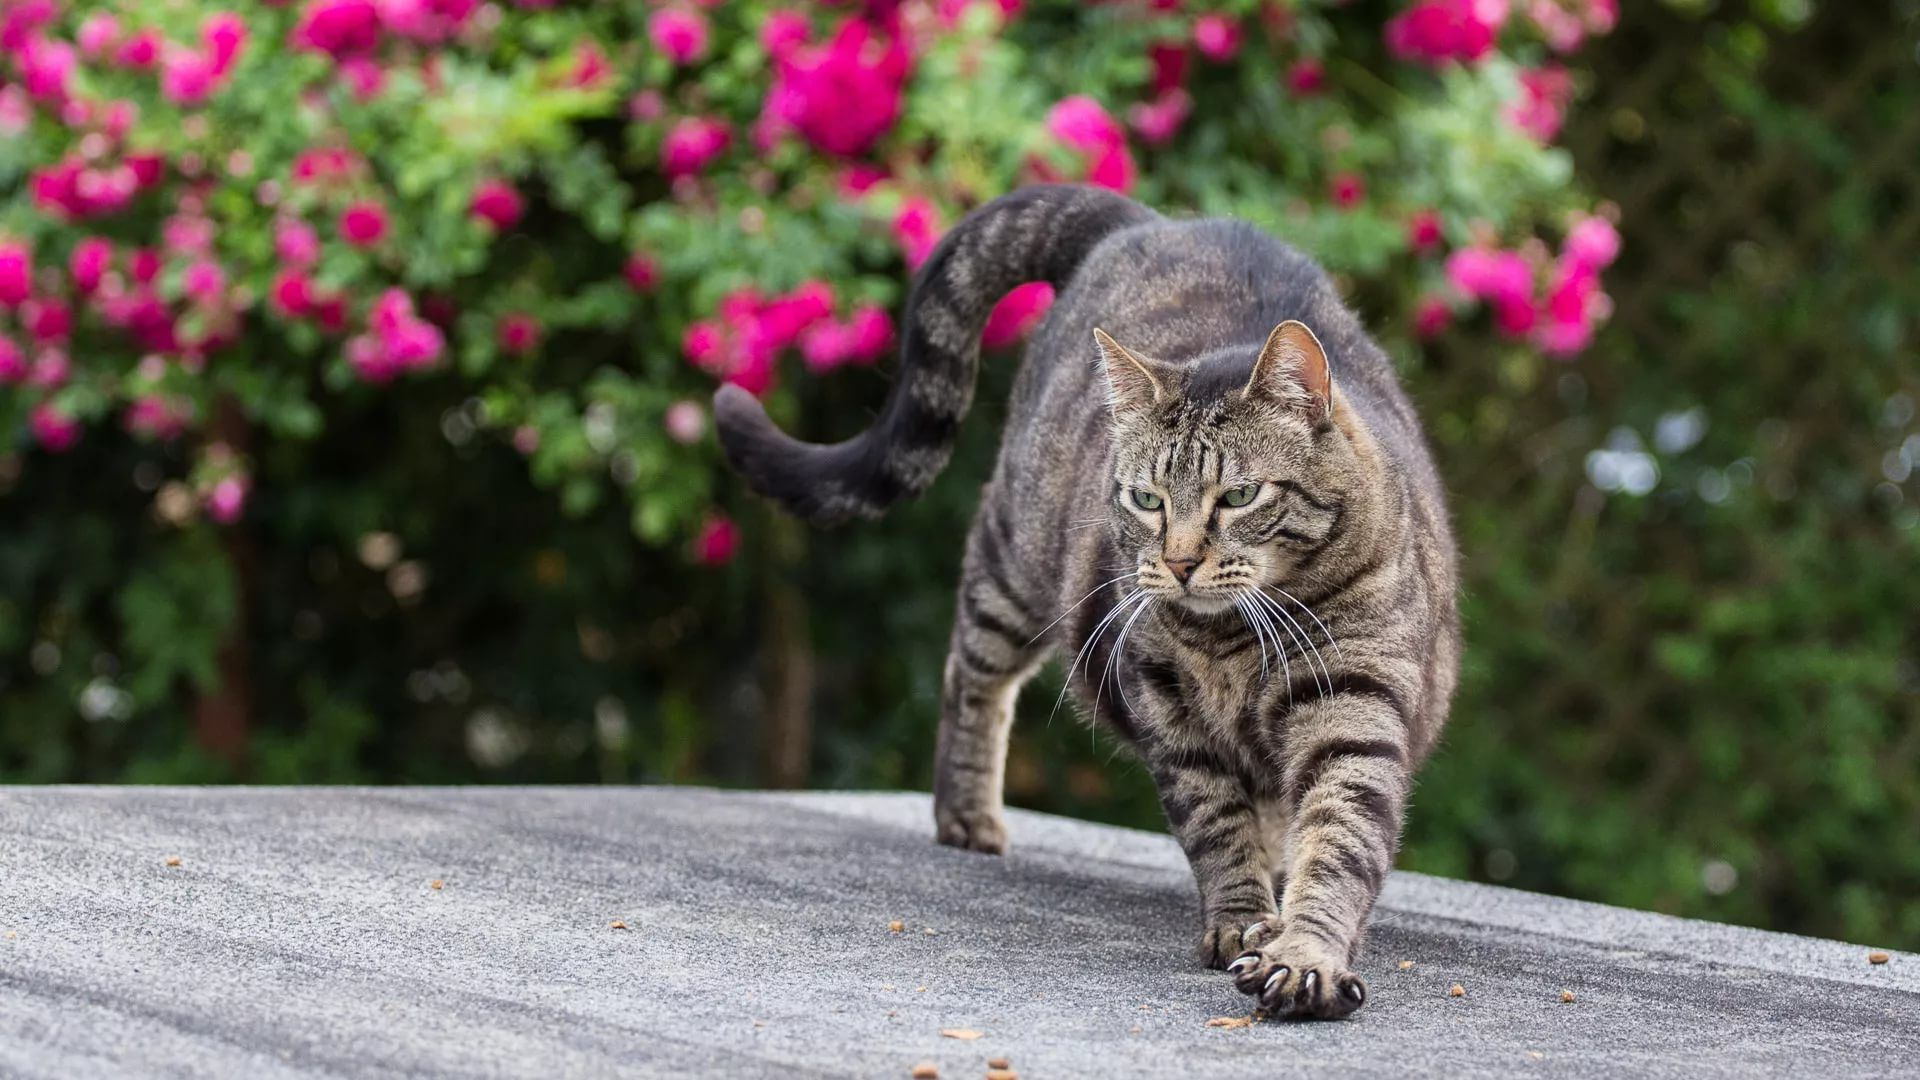 Lovely Cat download free wallpaper image search